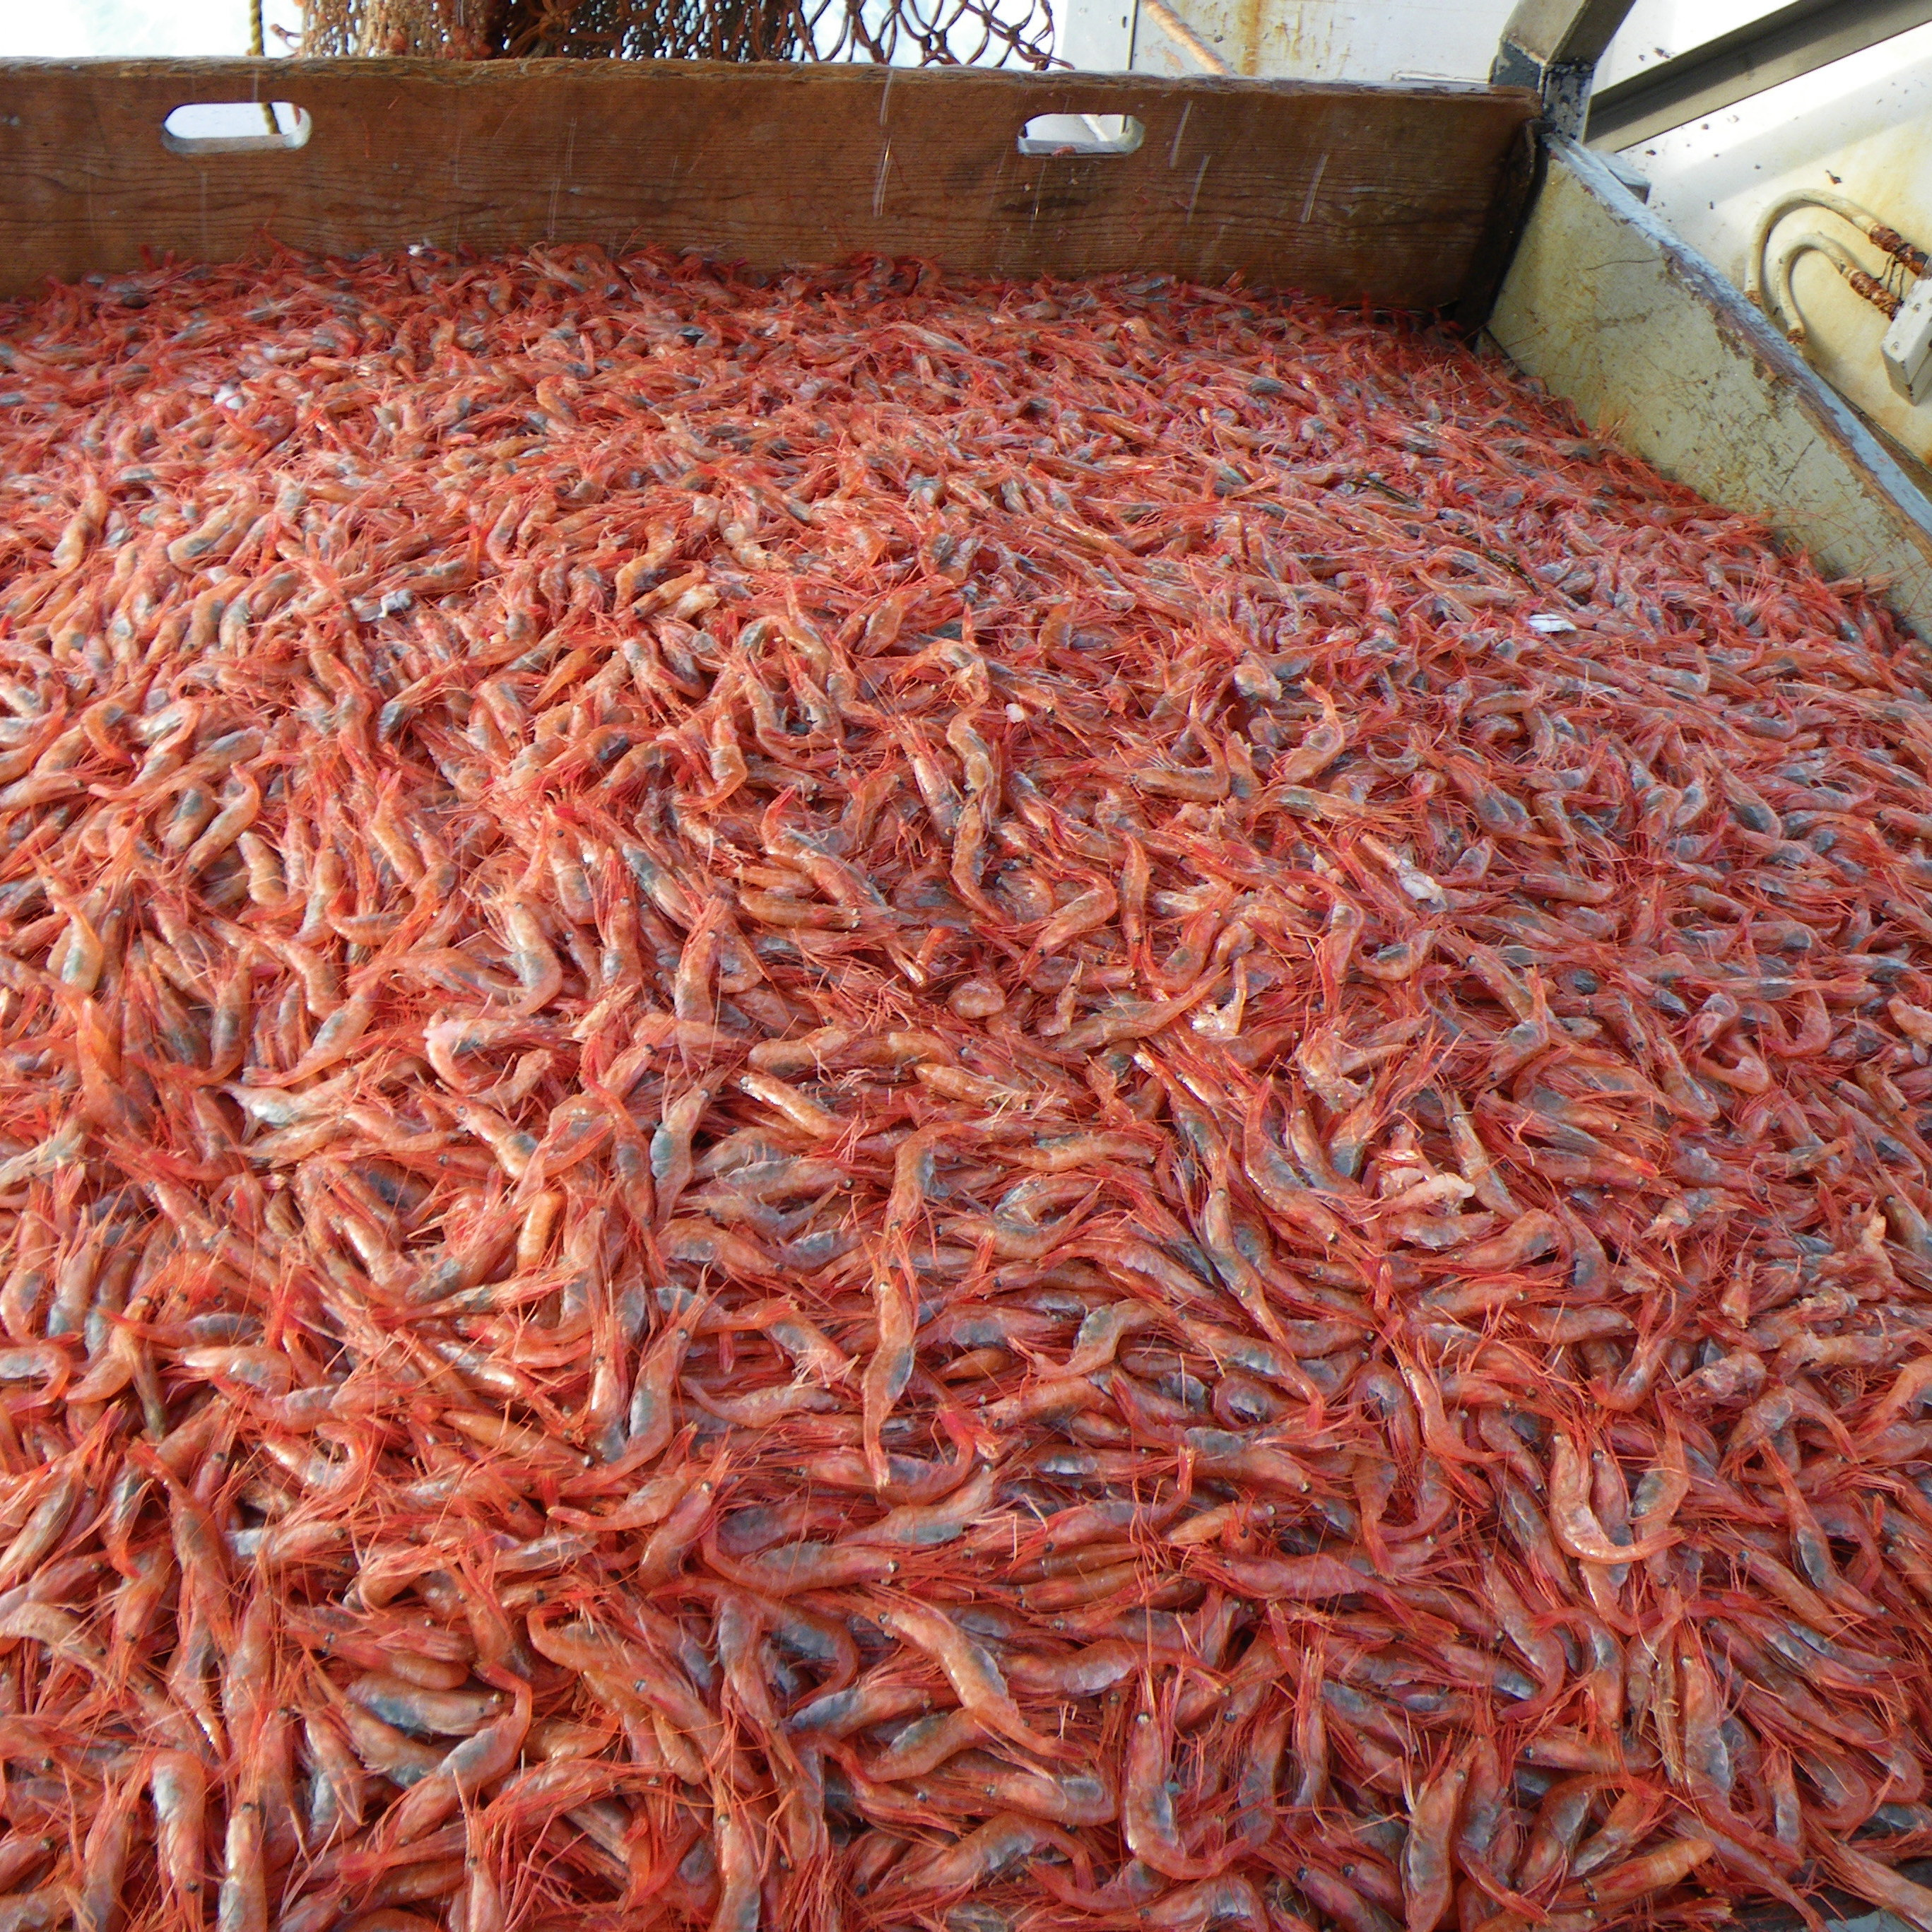 Maine shrimp are small and more red than pink. Mainers say the shrimp have a sweeter, more delicate flavor than shrimp from the American south or Asia.